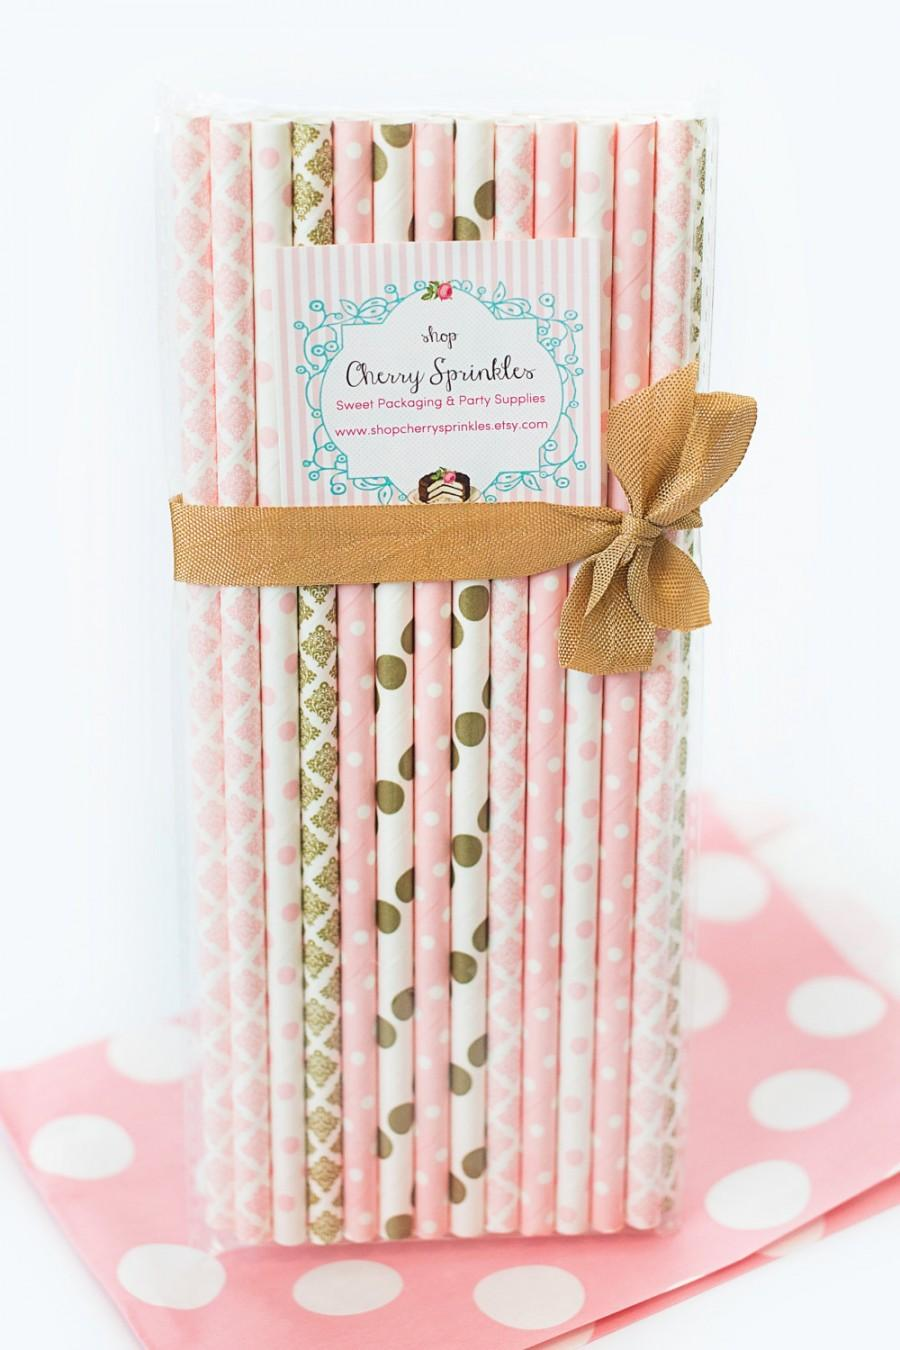 Mariage - PINK TUTUS -Party Supplies -Pinks and Golds  PINK Paper Straws for Baby Girl Showers, Weddings or Bridal Showers Gold Straws